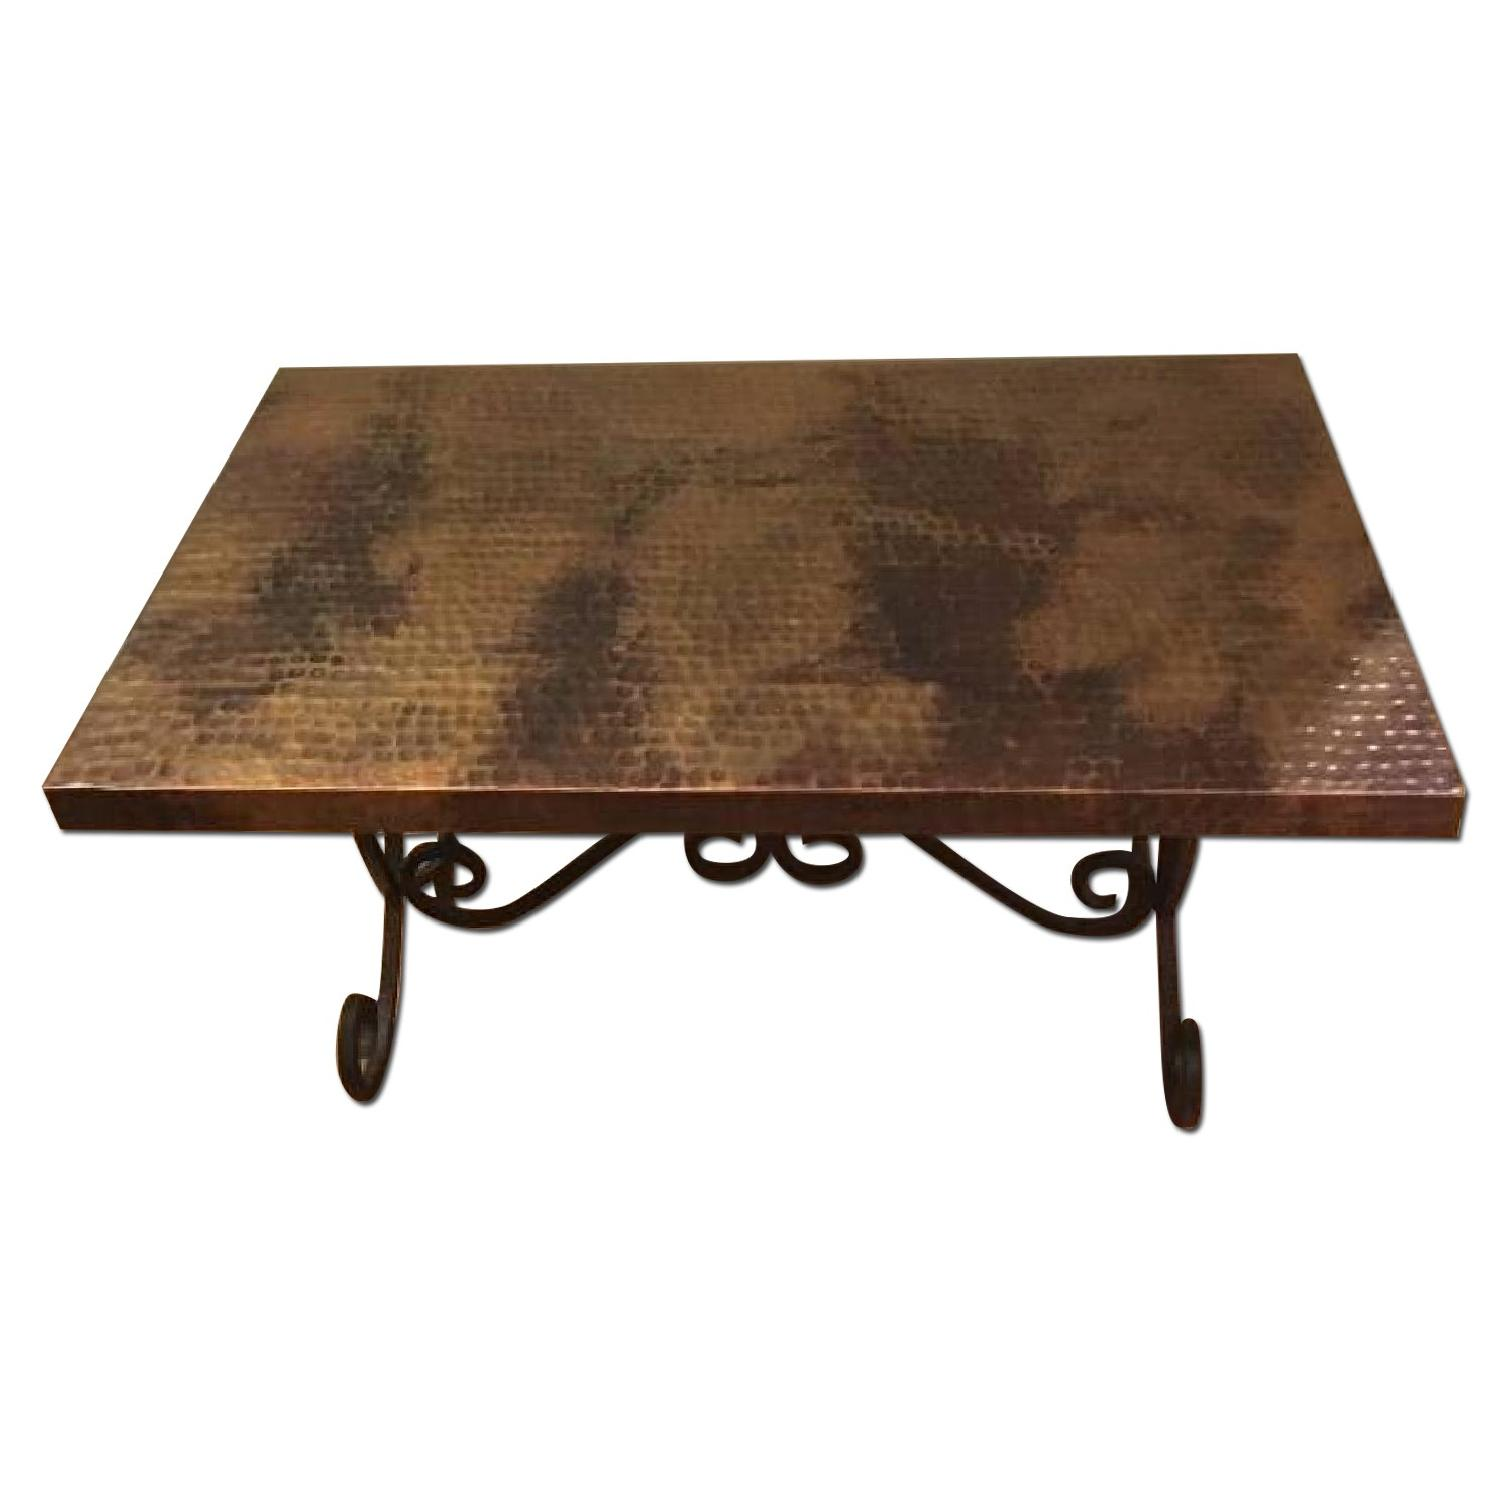 Hammered Copper Top Coffee Table - image-0